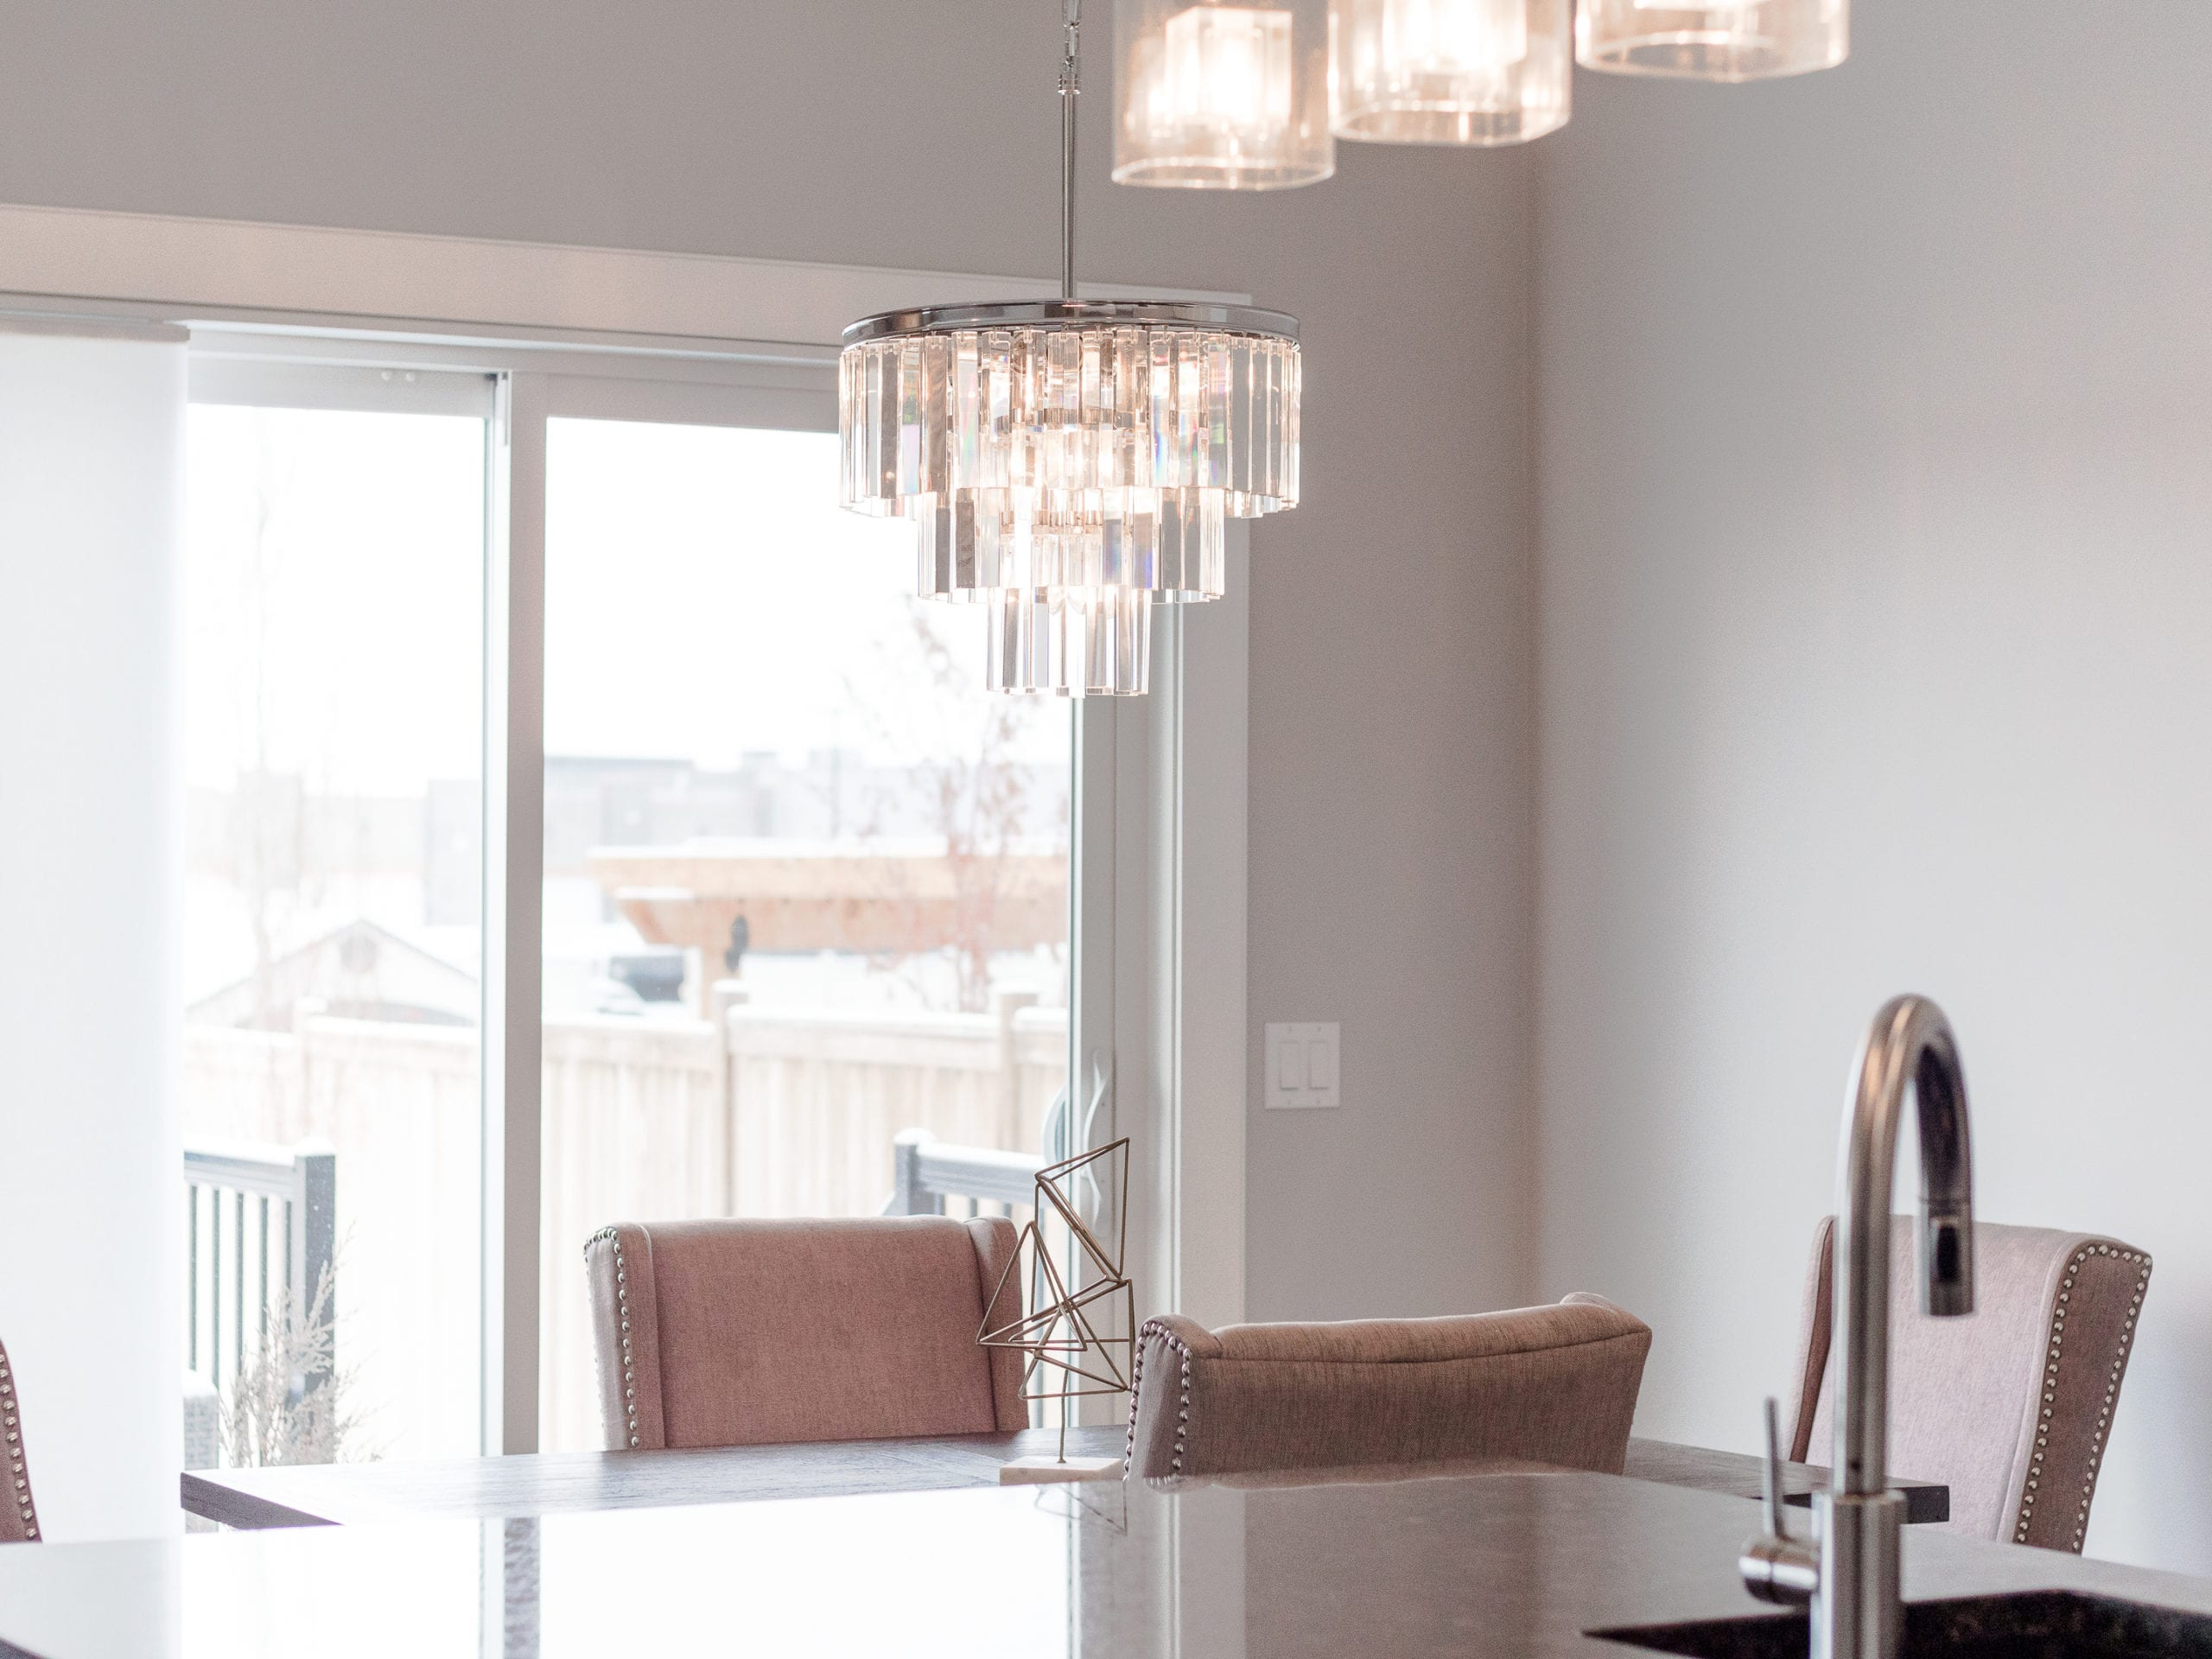 Hello Gorgeous - 1306 Kings Heights Way SE, Airdrie AB. - Tara Molina Real Estate (22 of 53)